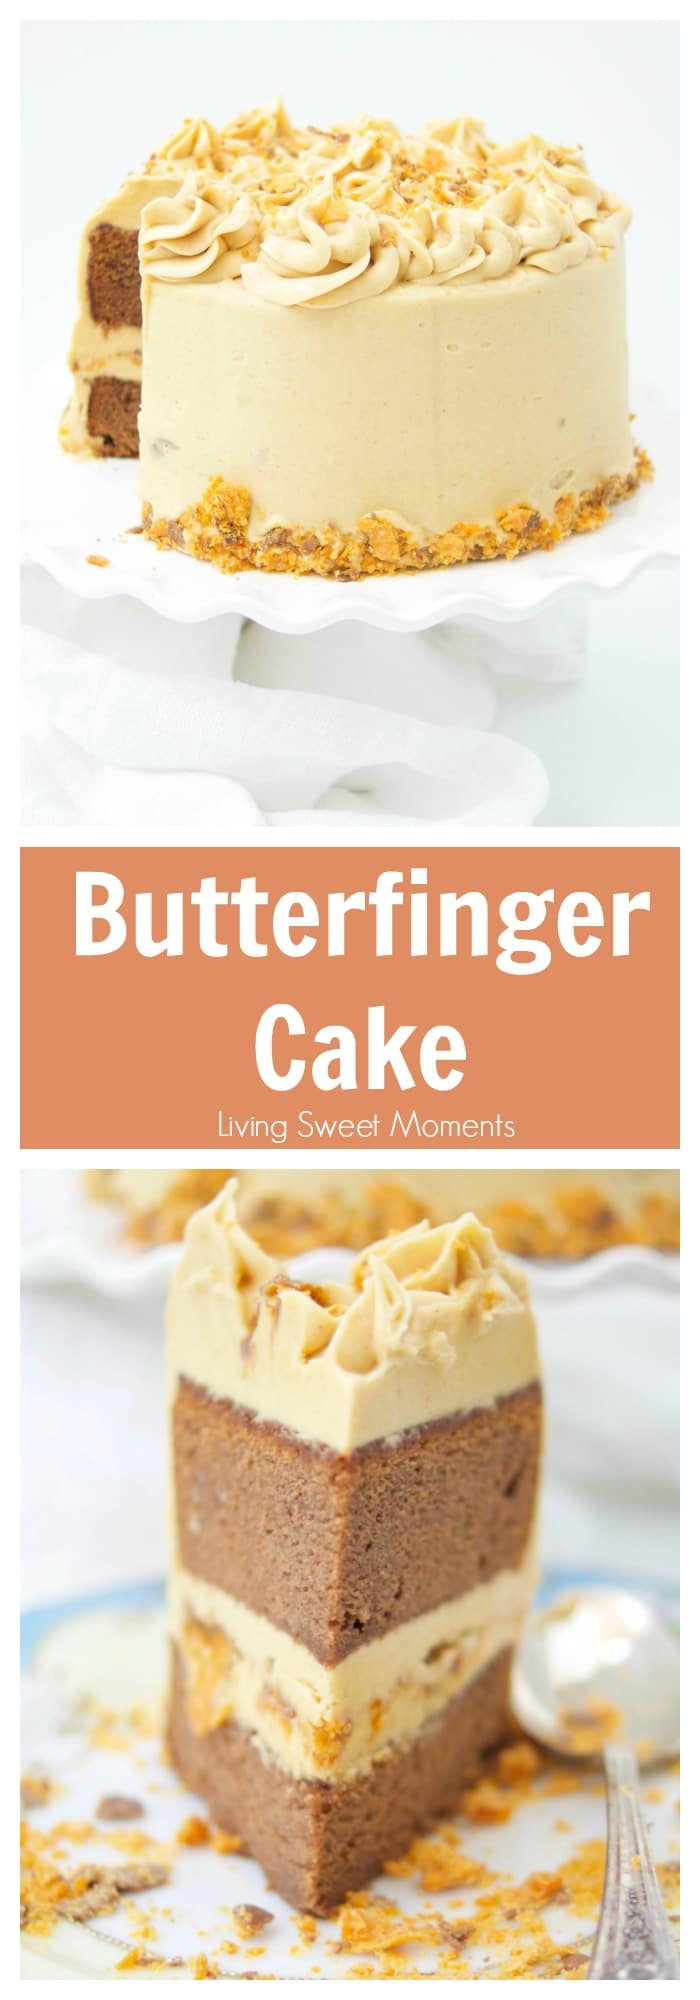 Need Recipe For Butterfinger Cake